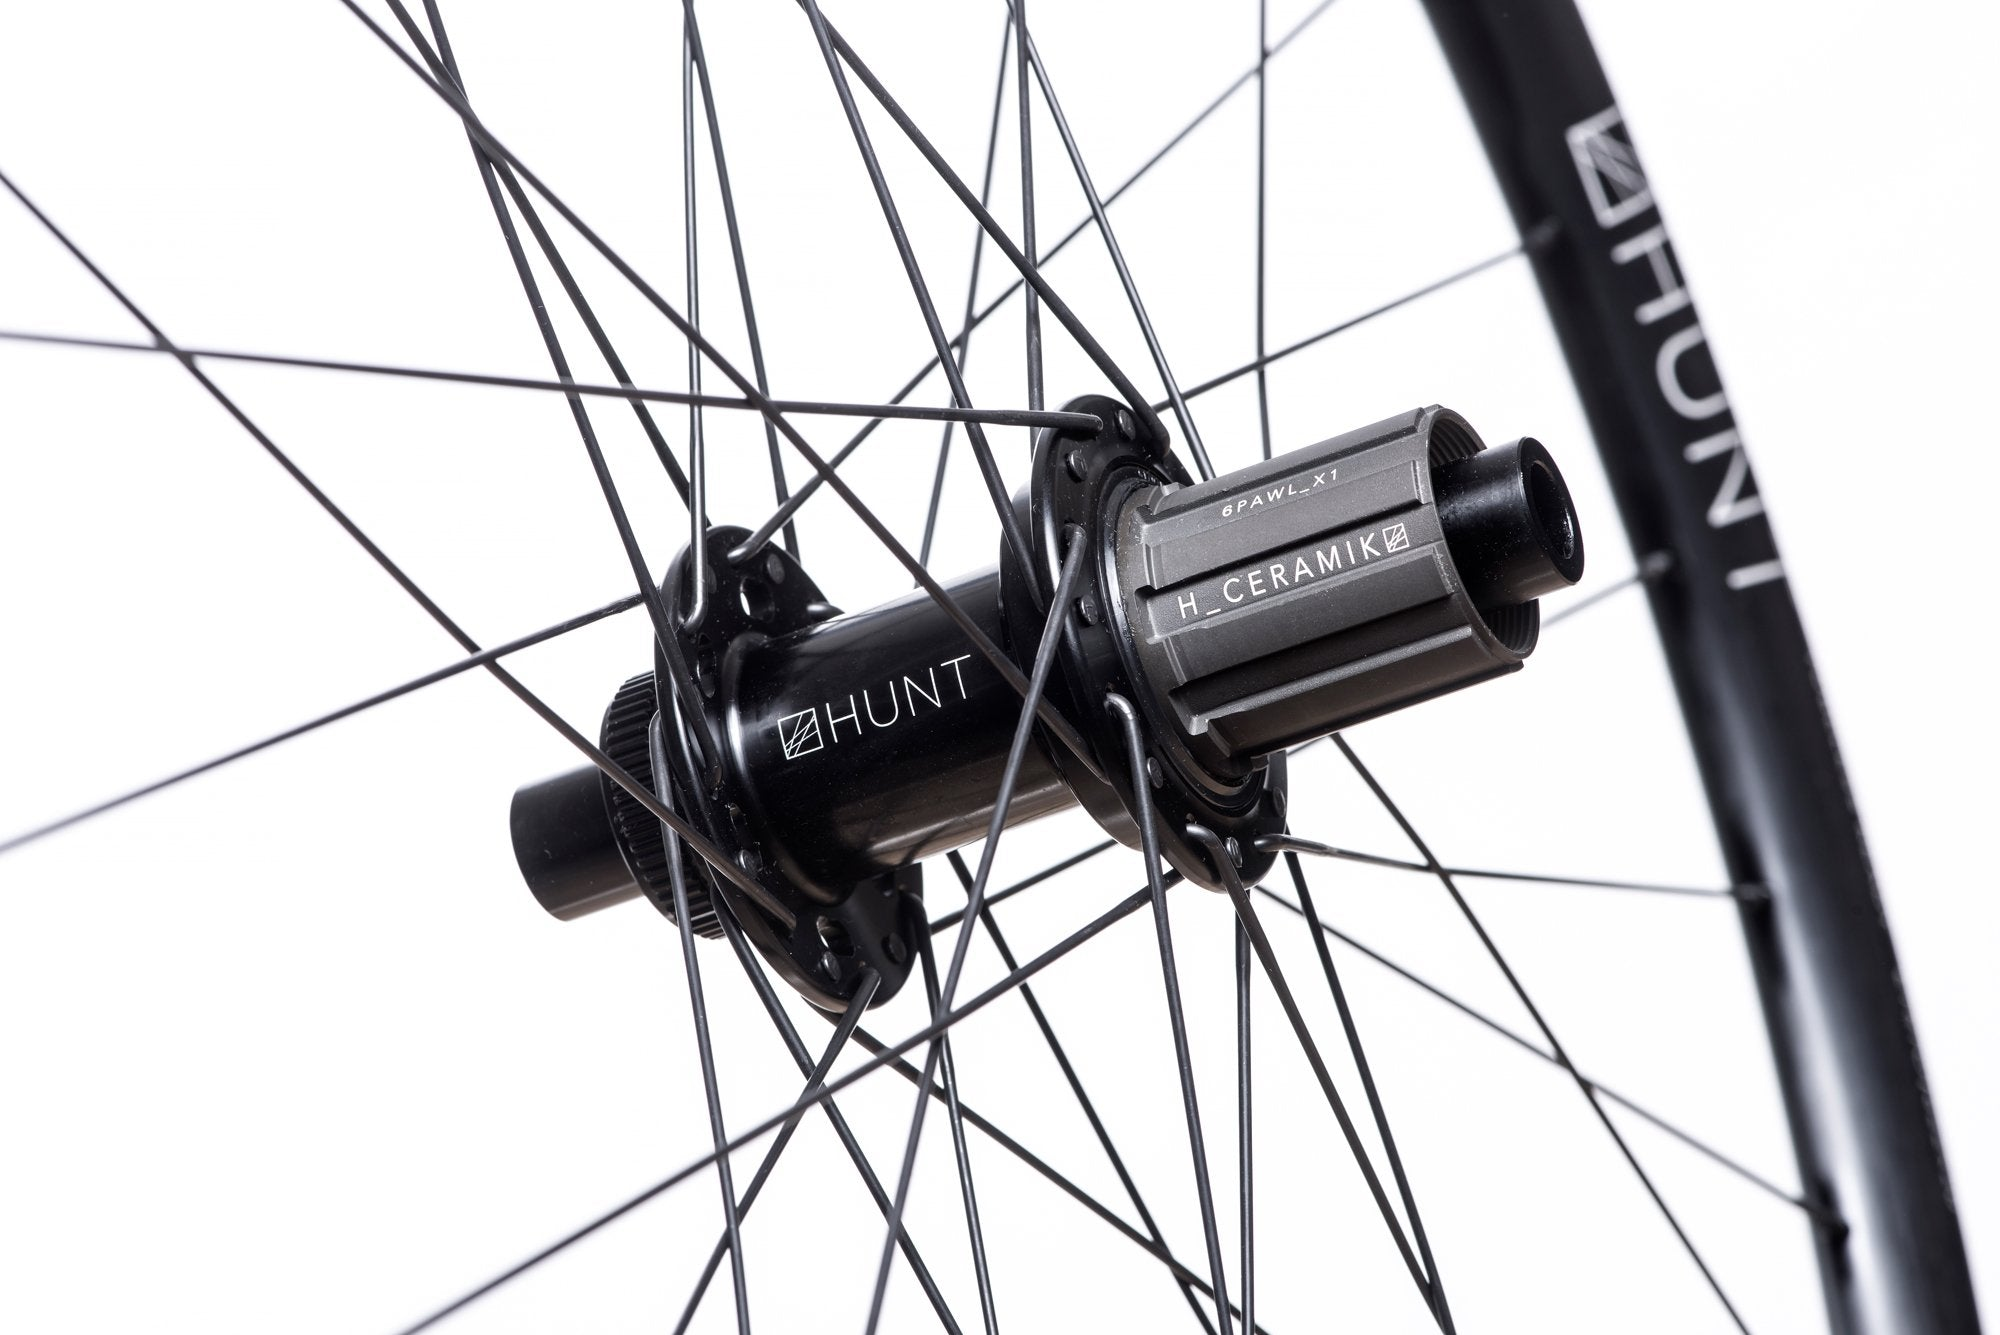 <html><h1>Freehub Body</h1><i>Durability is a theme for HUNT as time and money you spend fixing is time and money you cannot spend riding or upgrading your bikes. As a result, we've developed the <em>H_CERAMIK</em> coating to provide excellent durability and protect against cassette sprocket damage often seen on standard alloy freehub bodies.</i></html>